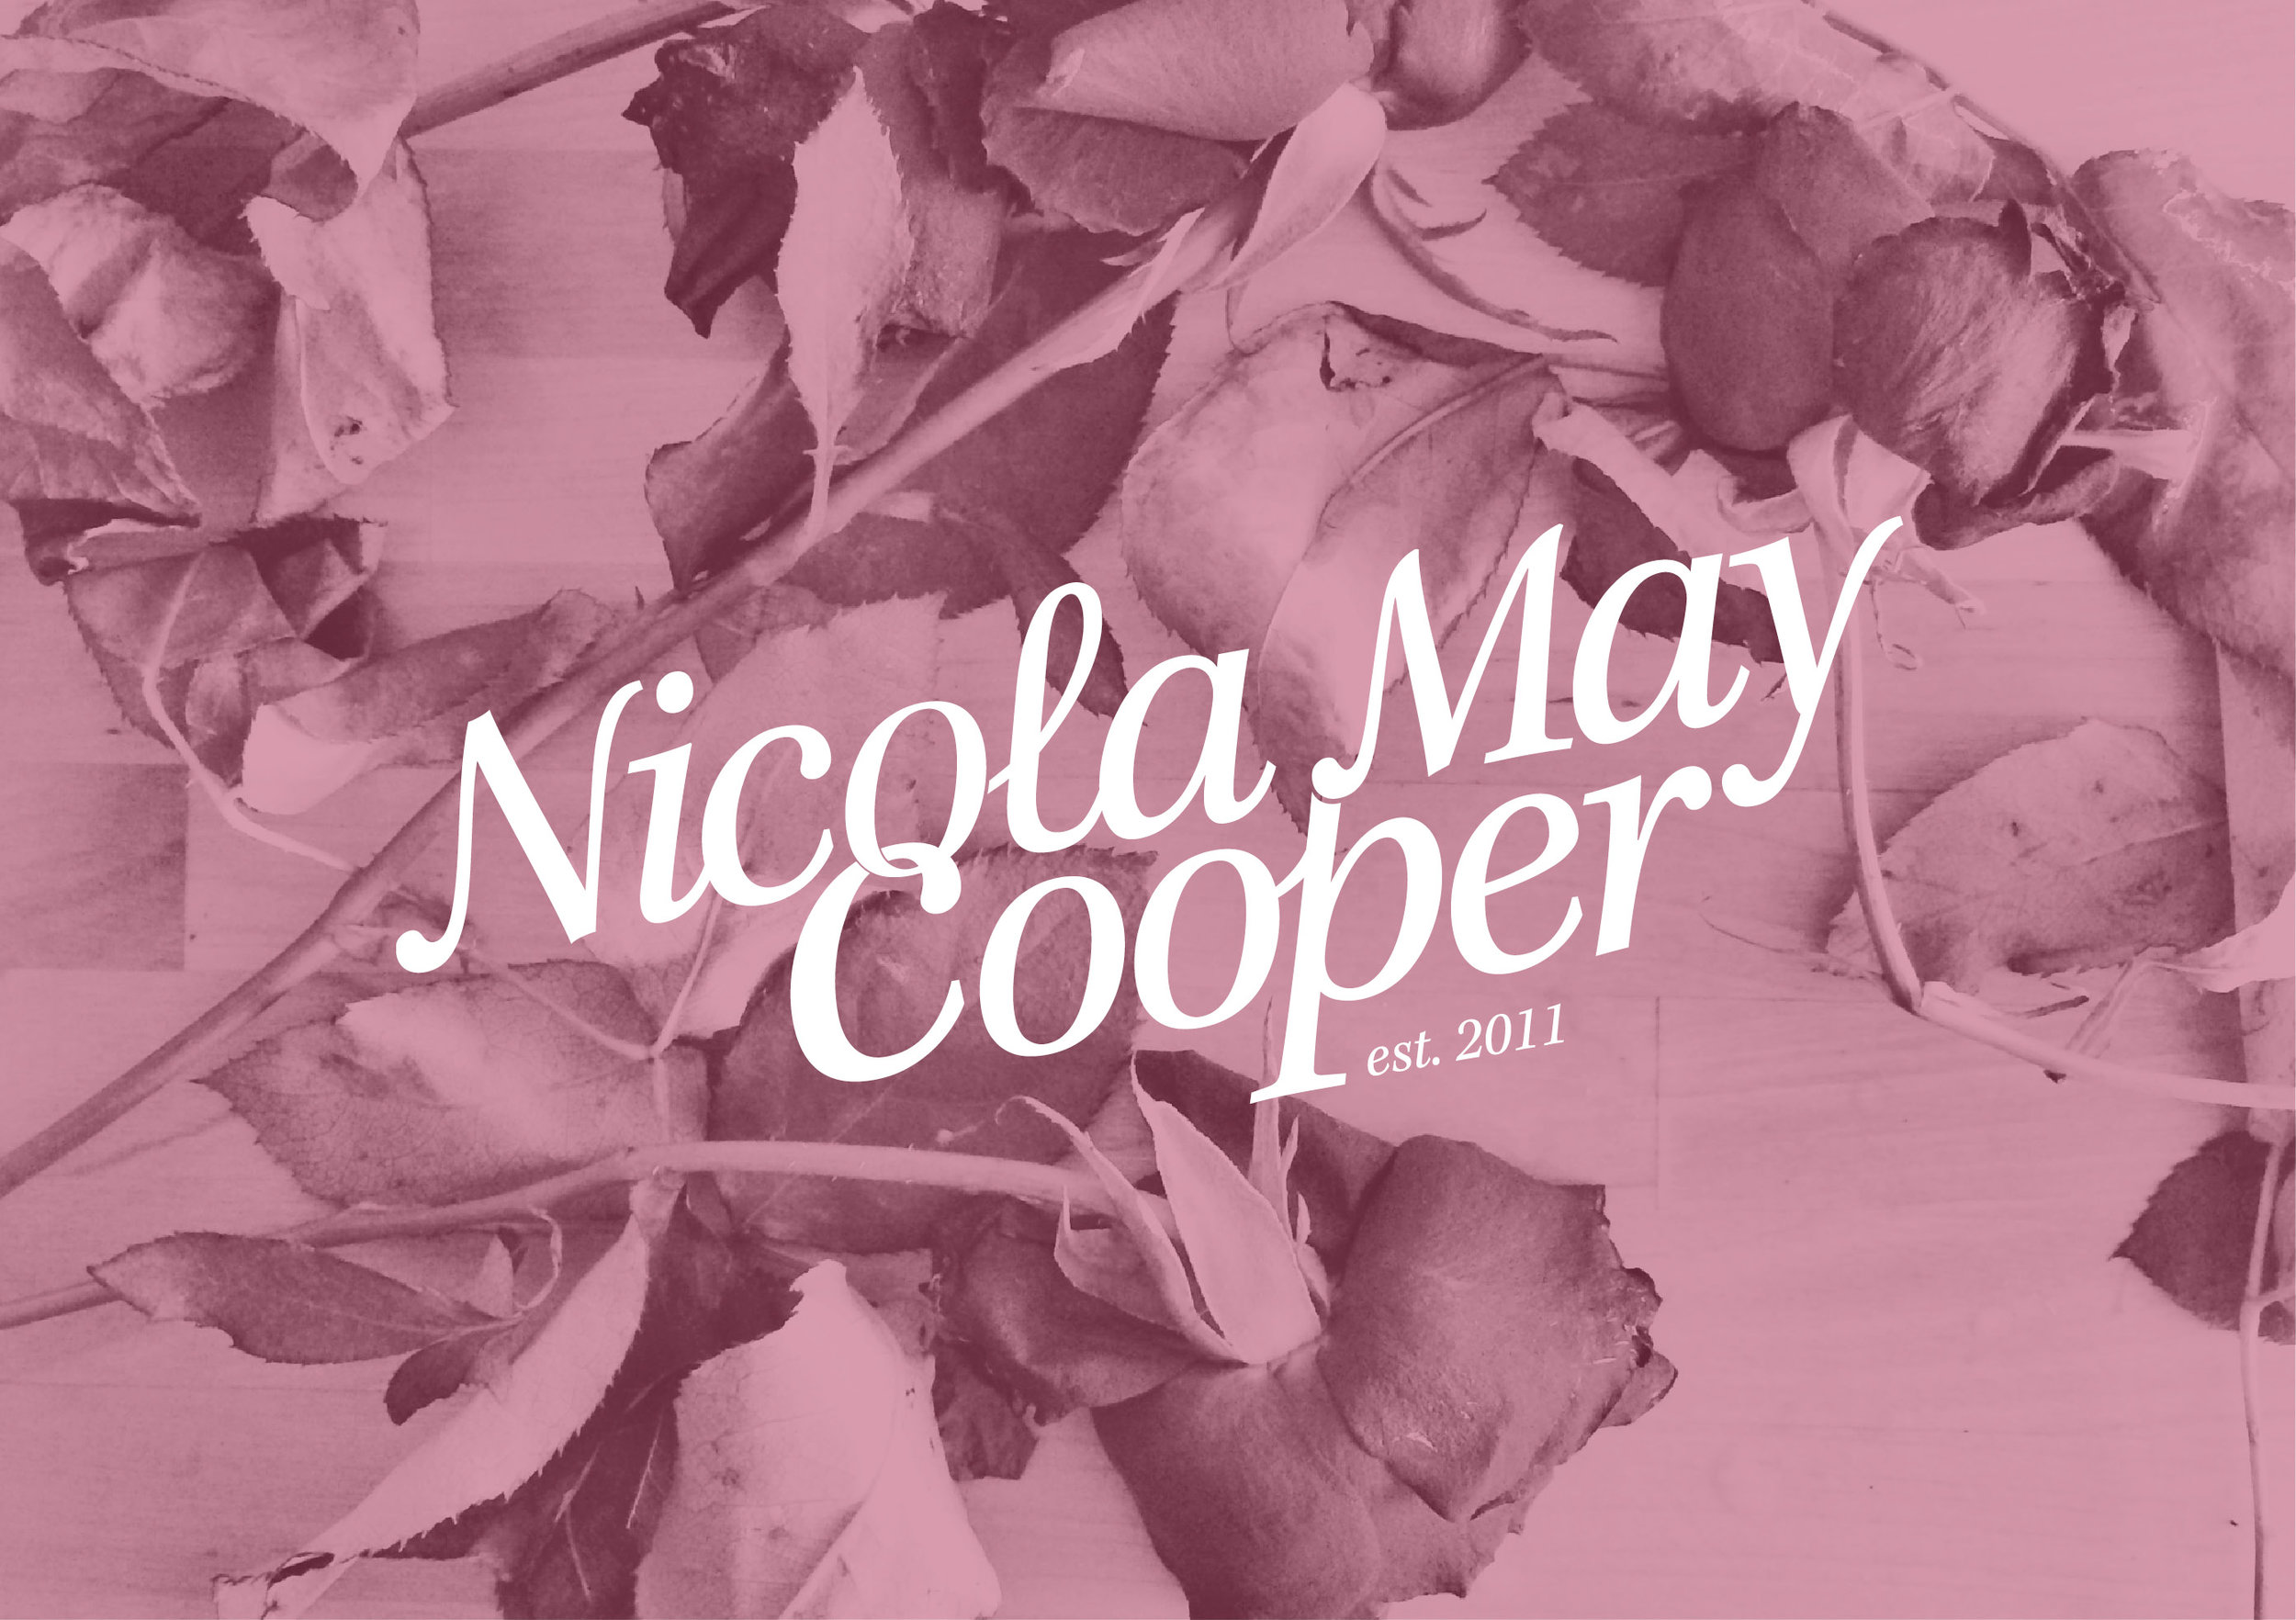 Alexsia-Heller-Nicola-May-Cooper-Brand-Identity